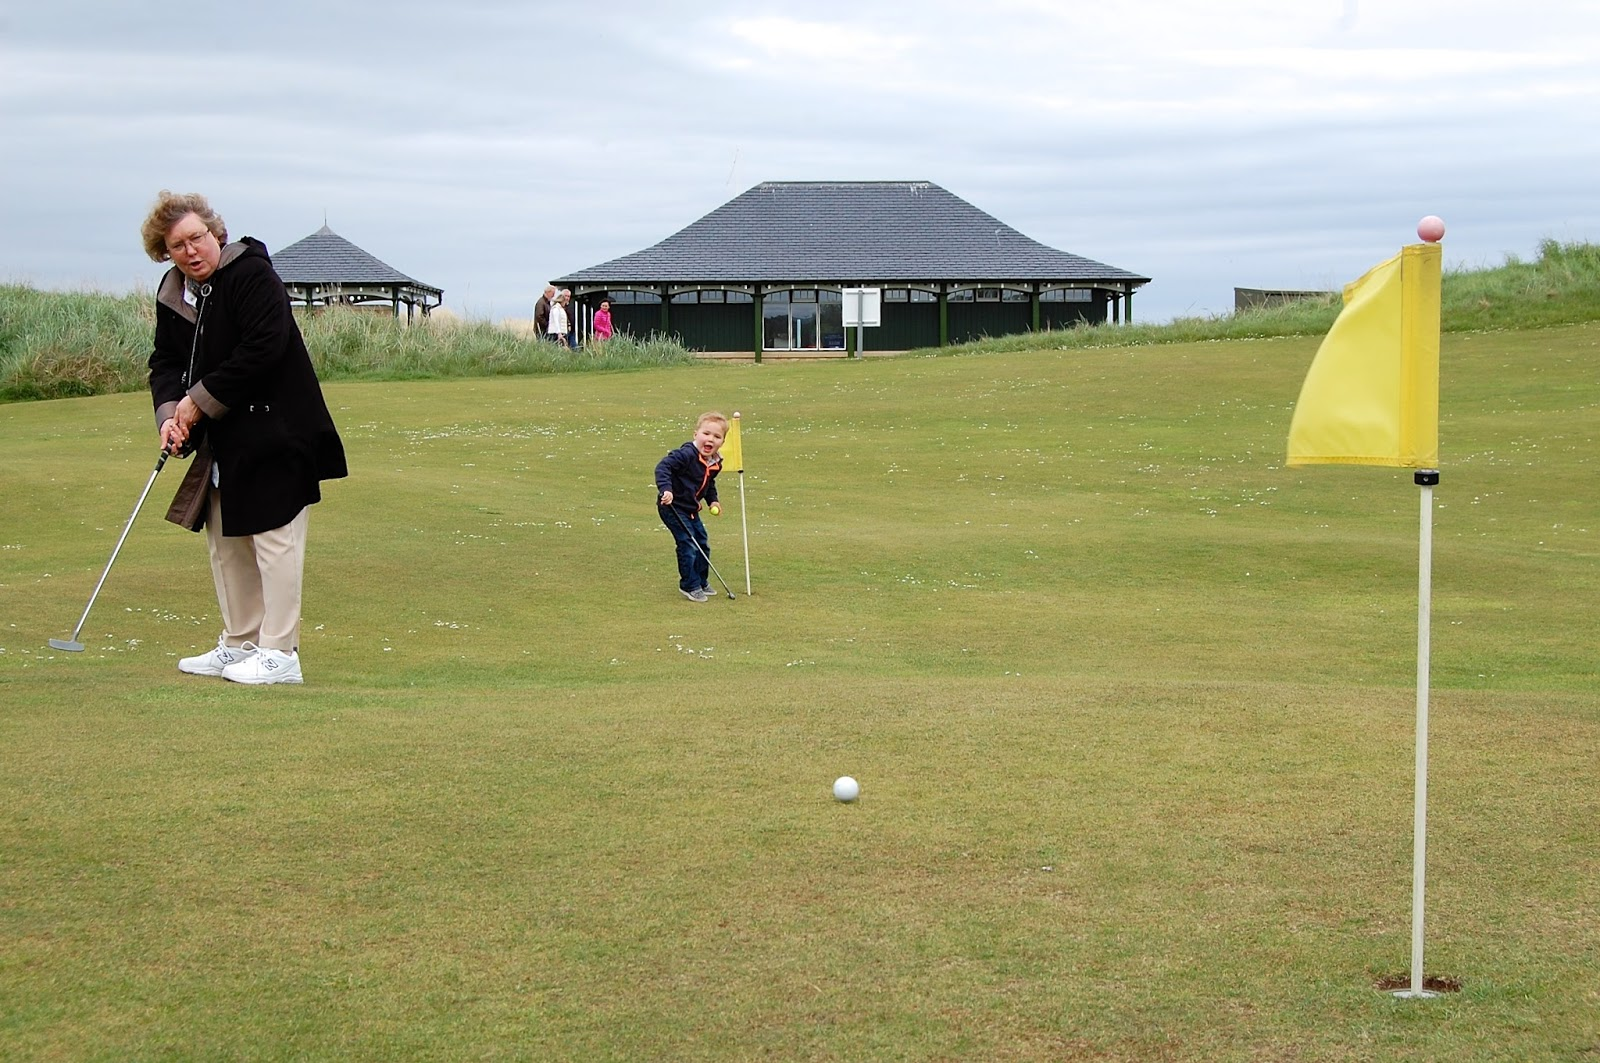 Putting on the Himalayas at the Old Course